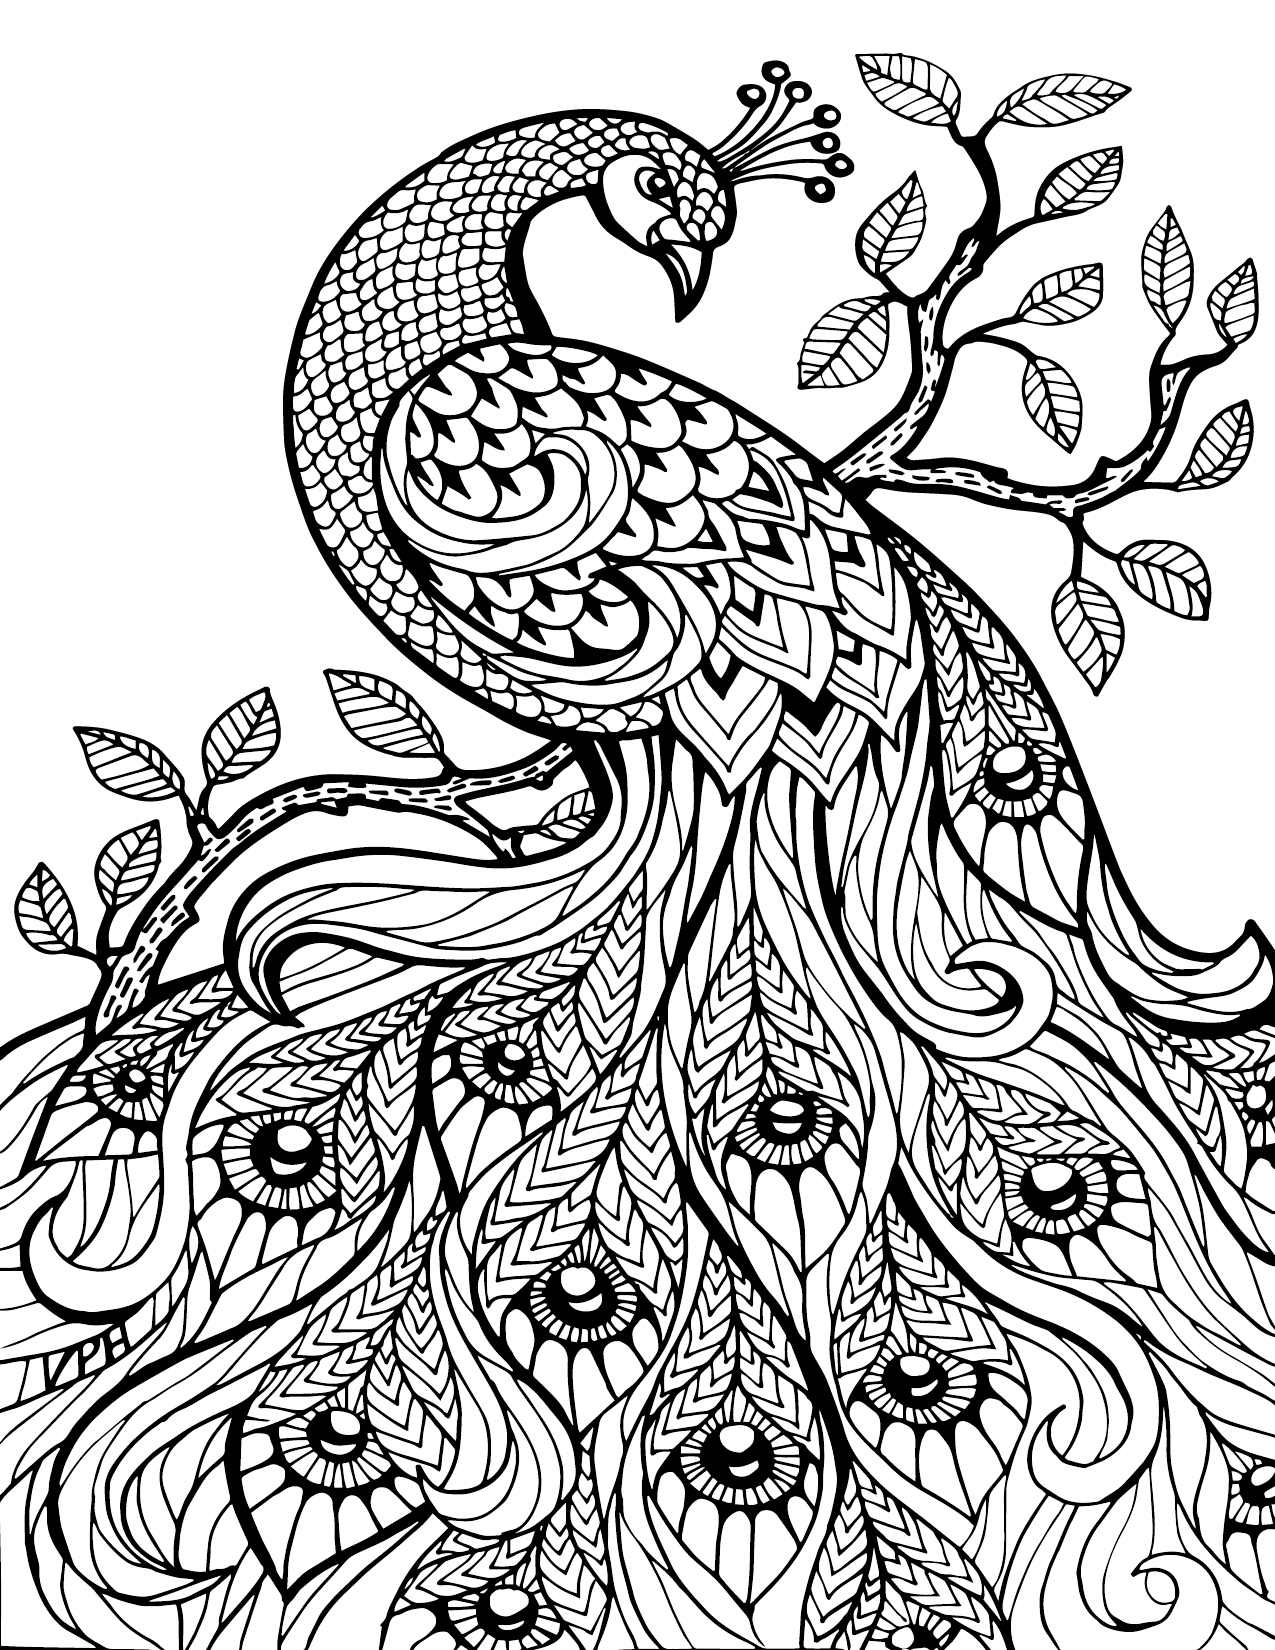 Printable Coloring Pages for Adults - Cat Coloring Pages for Adults Bestofcoloring